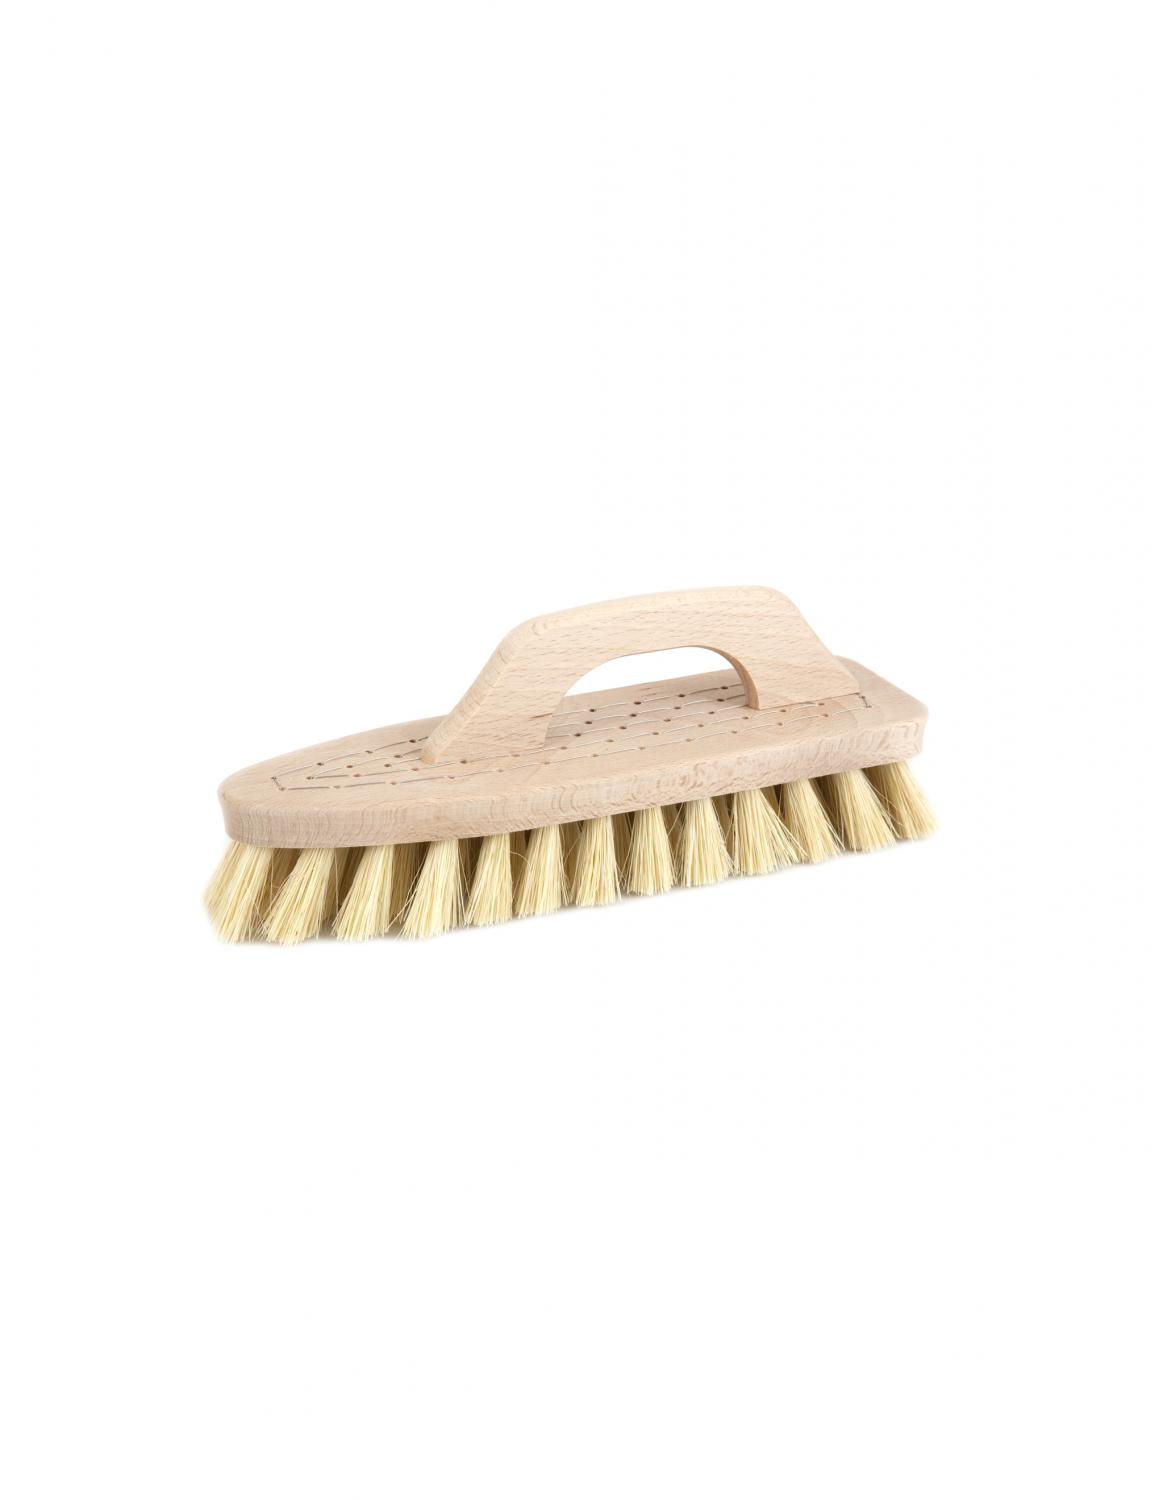 Scrubbing Brush with Handle Tampico fibre